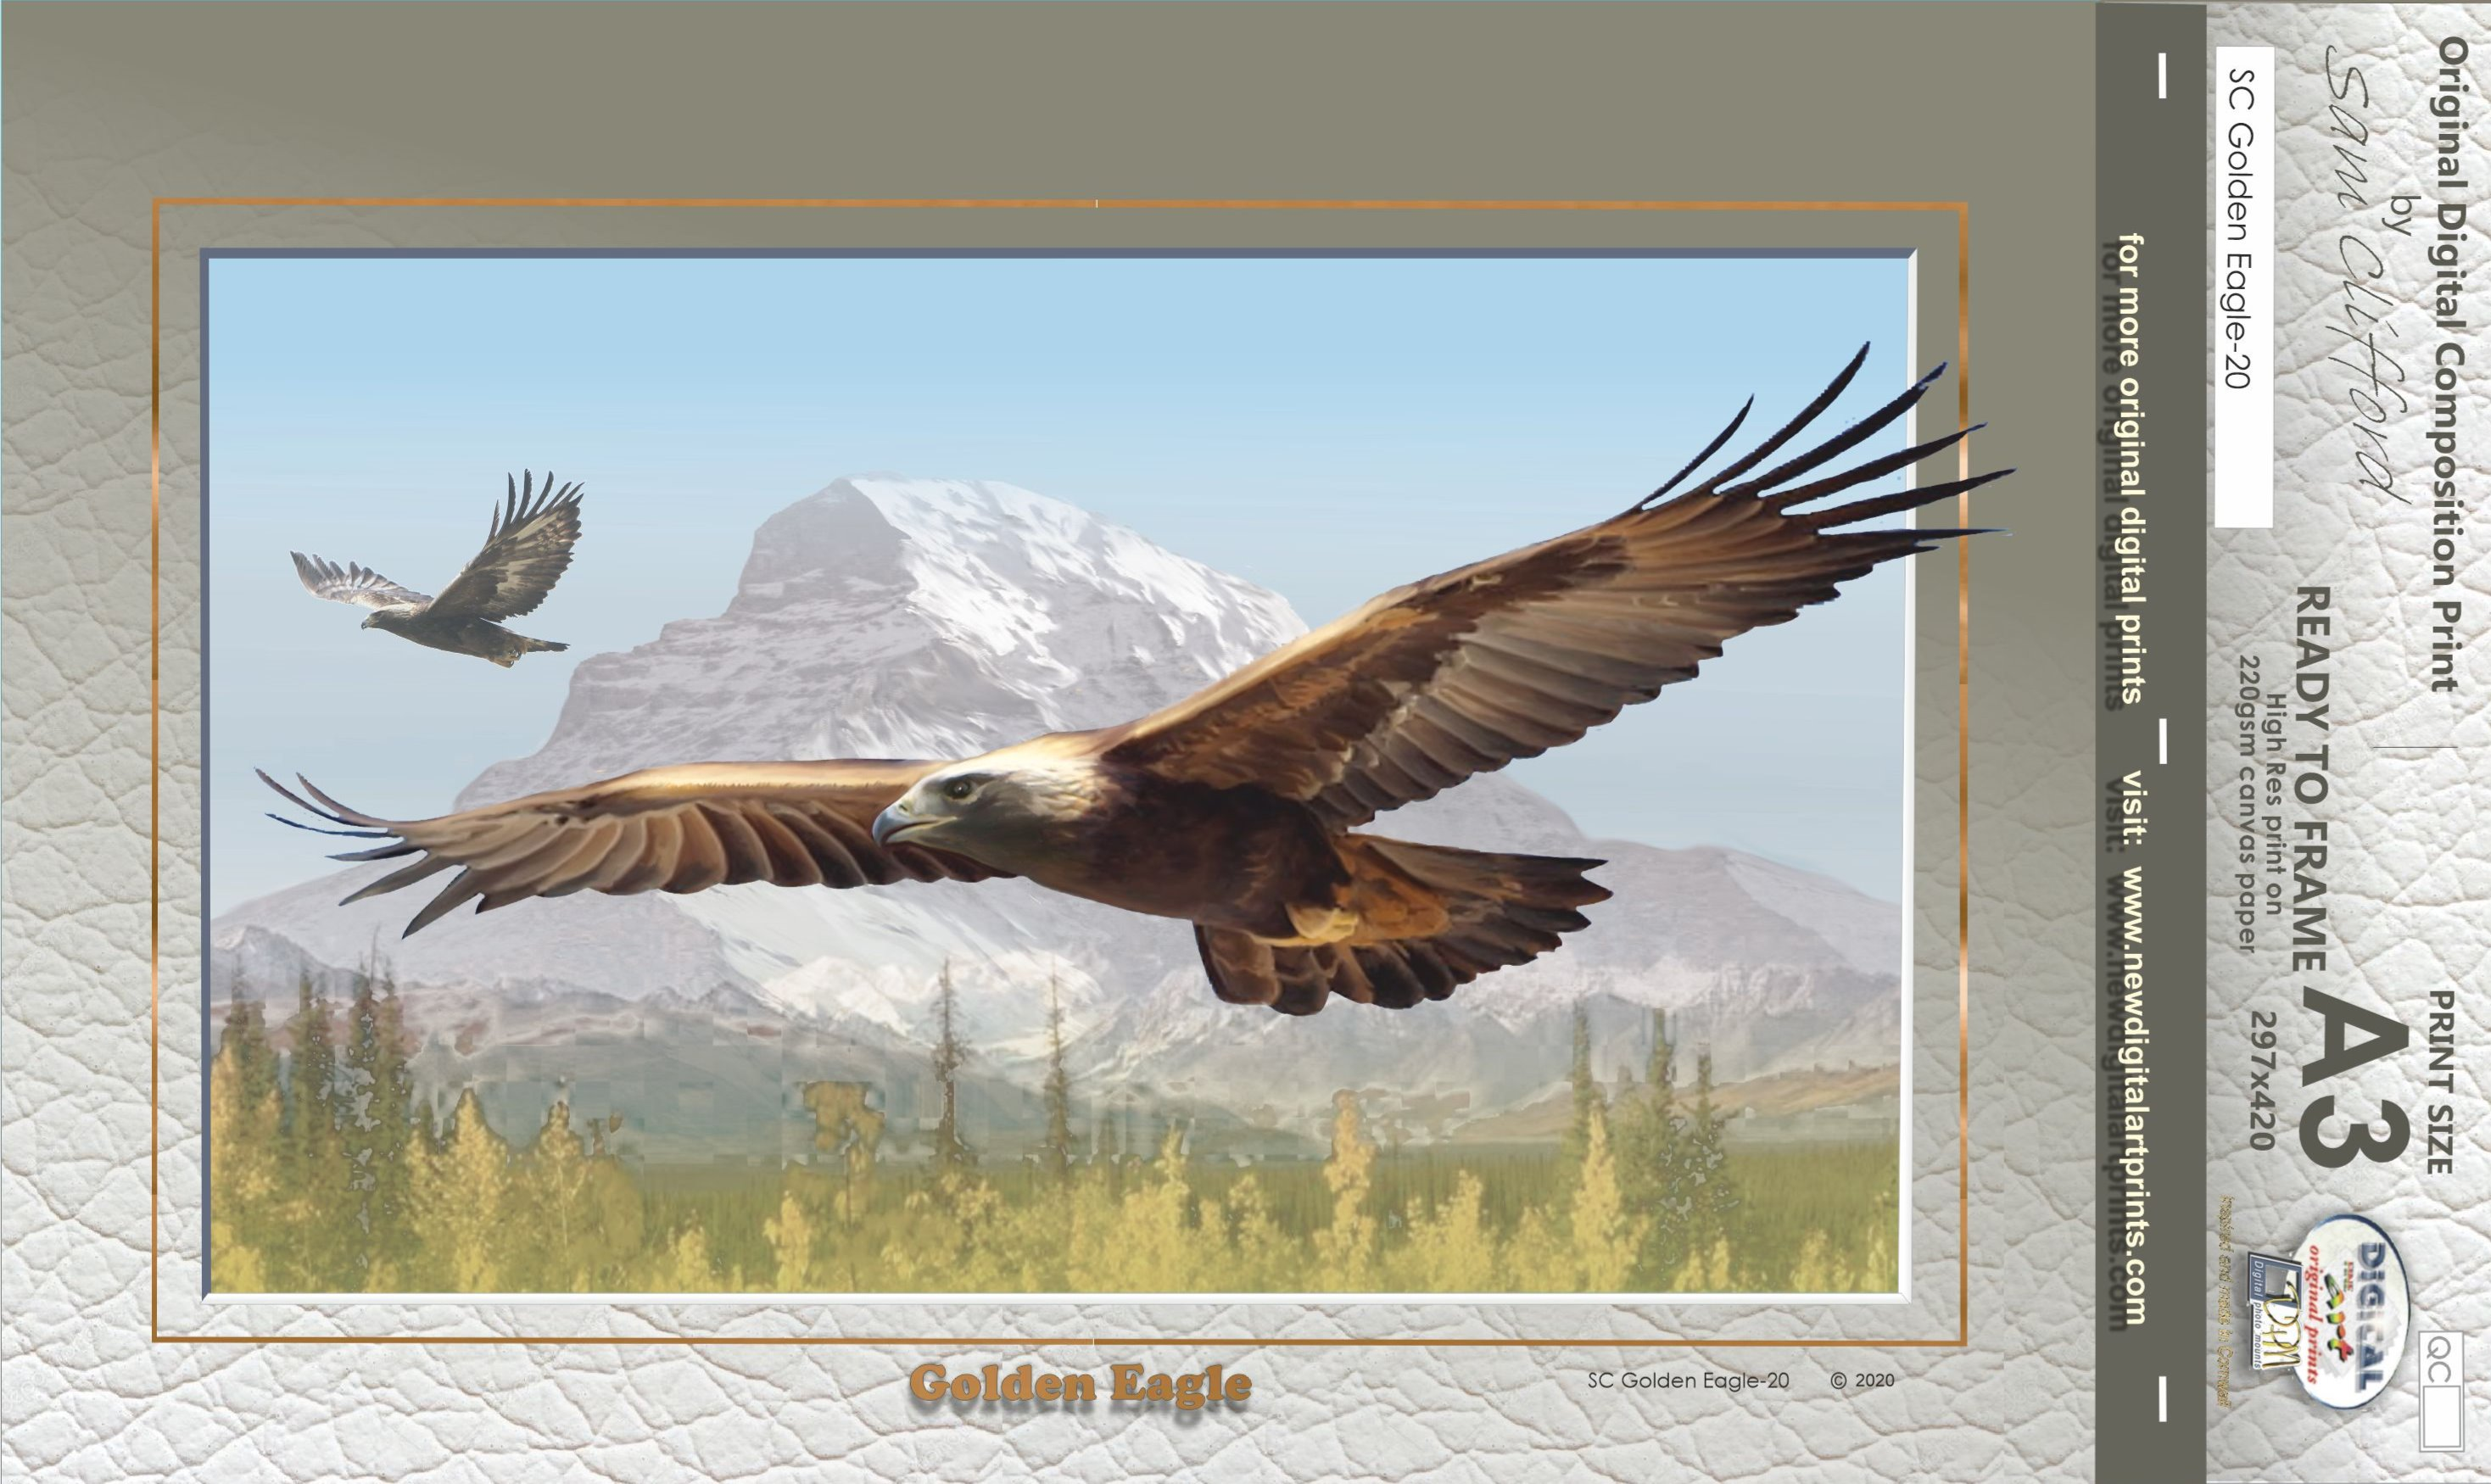 print code: SC Golden Eagle-20